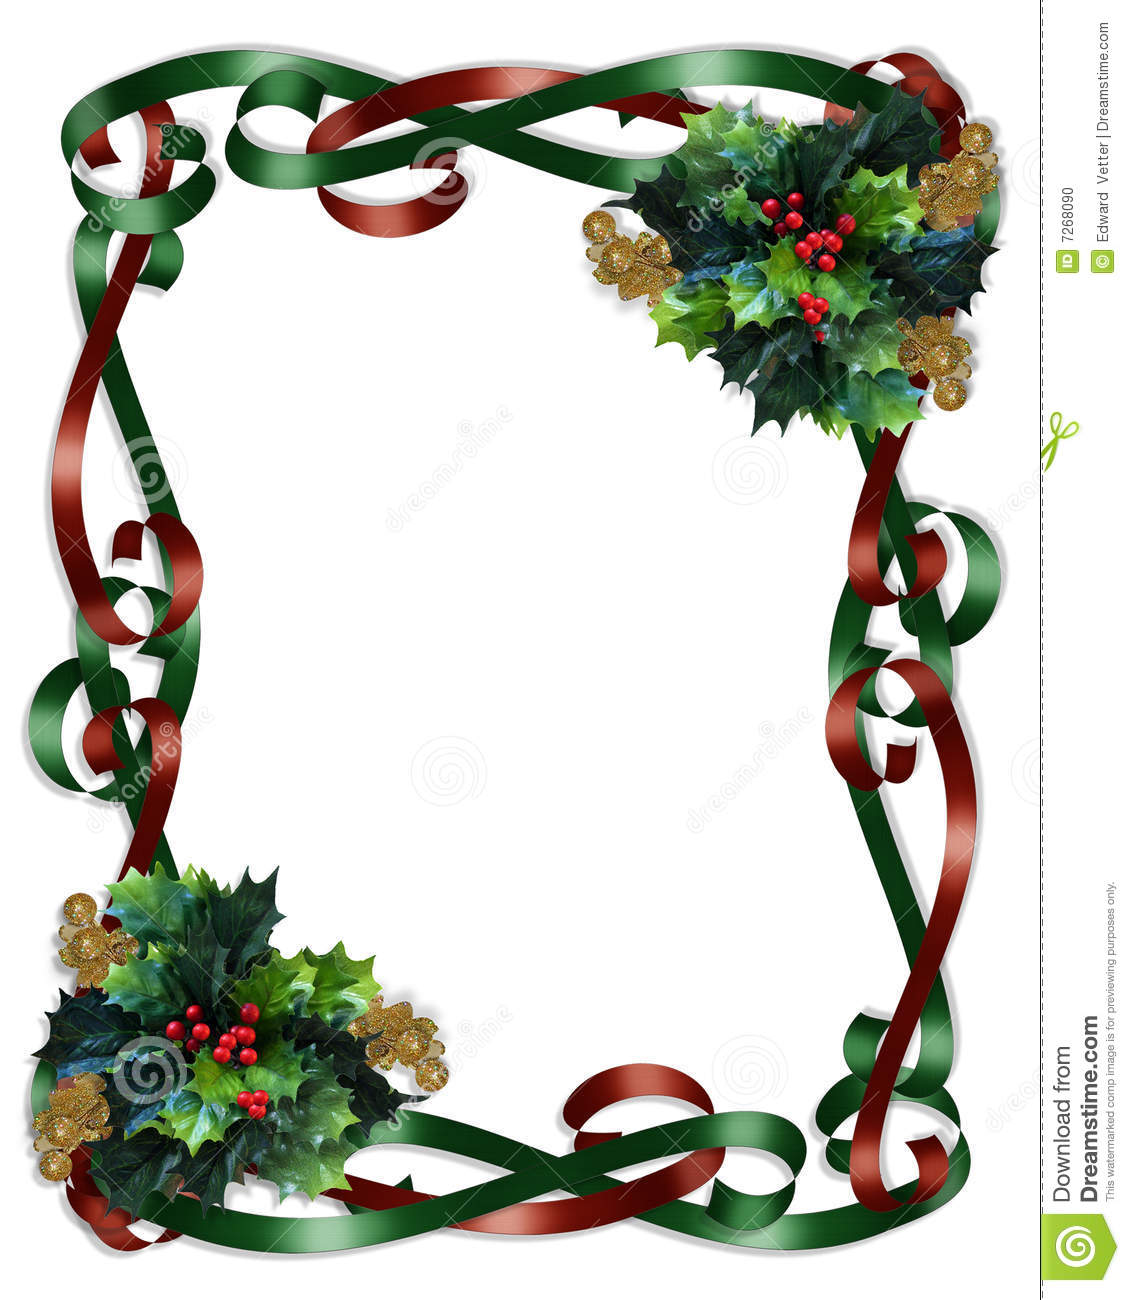 1130x1300 Christmas Ornament Border Clipart